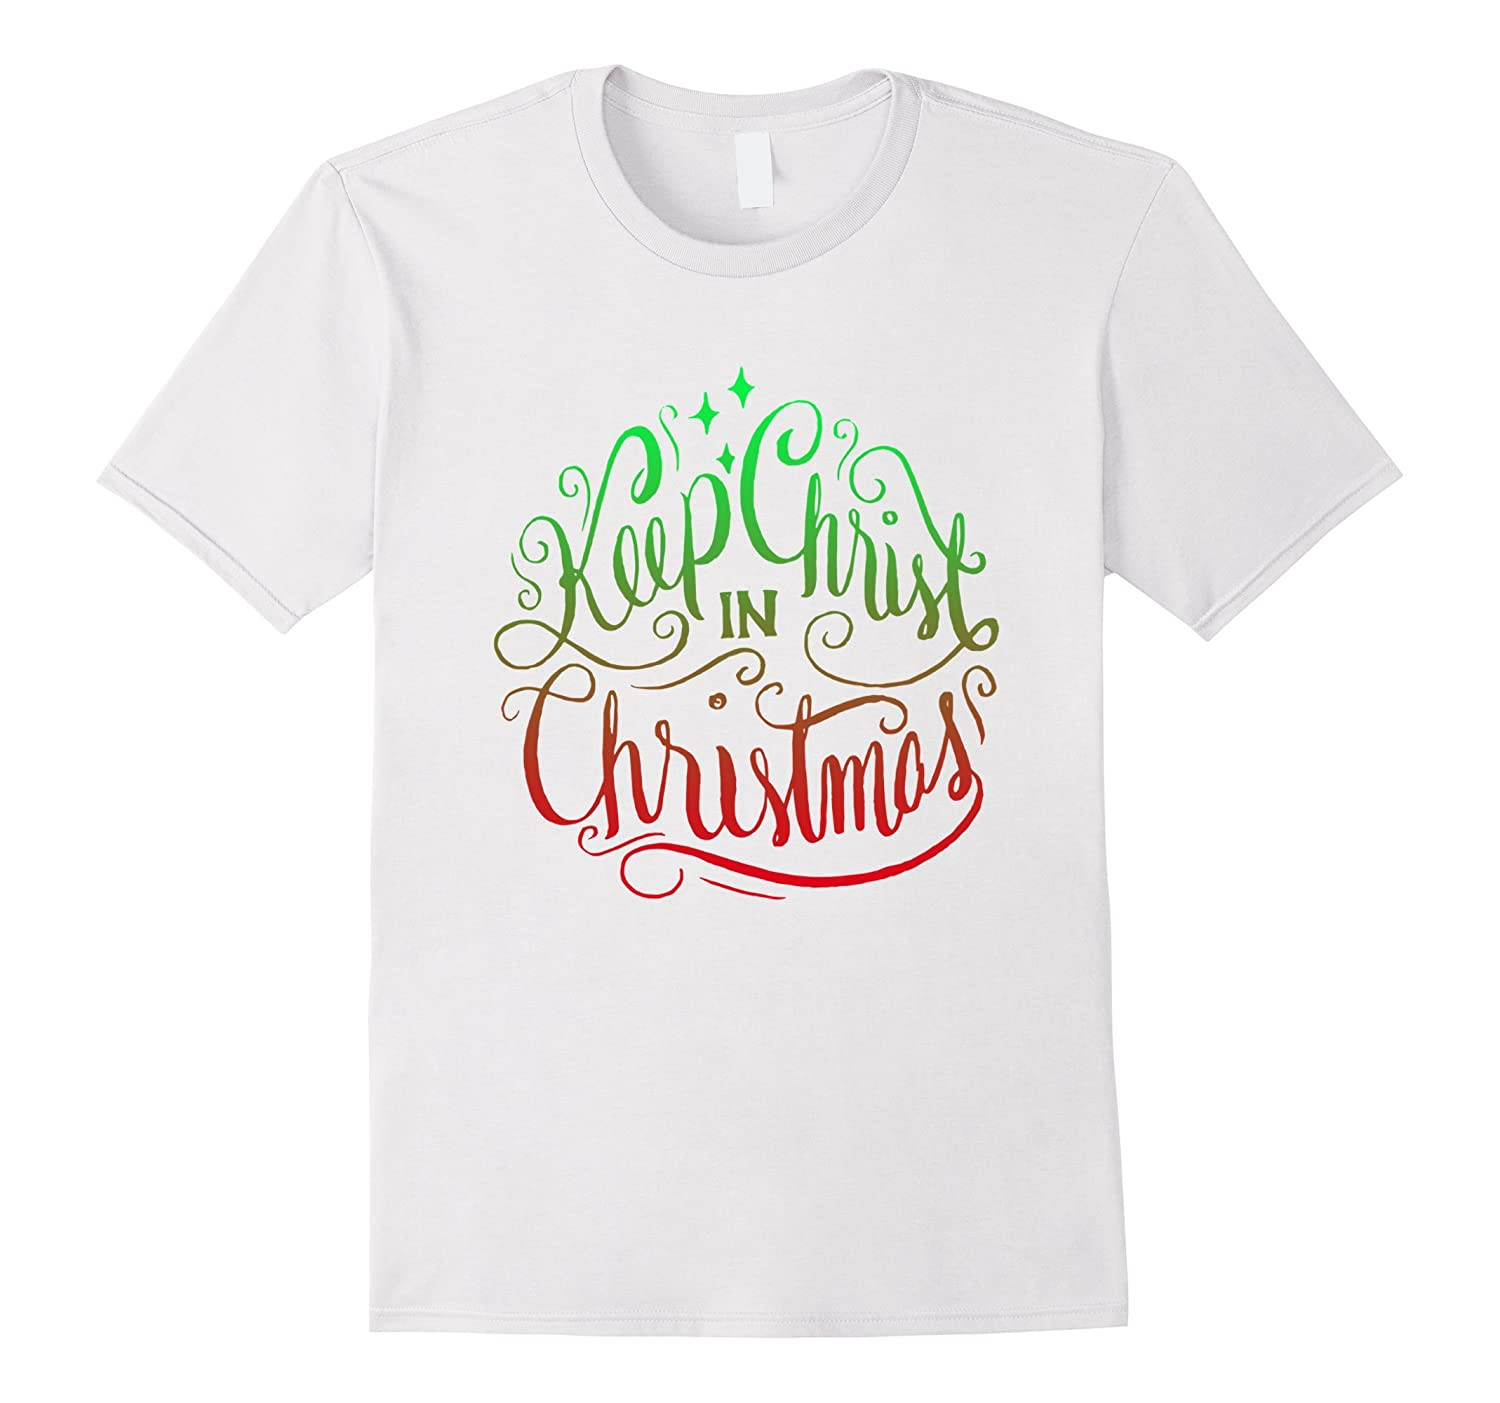 Keep Christ in Christmas – Christian Holiday T Shirt-CL – Colamaga